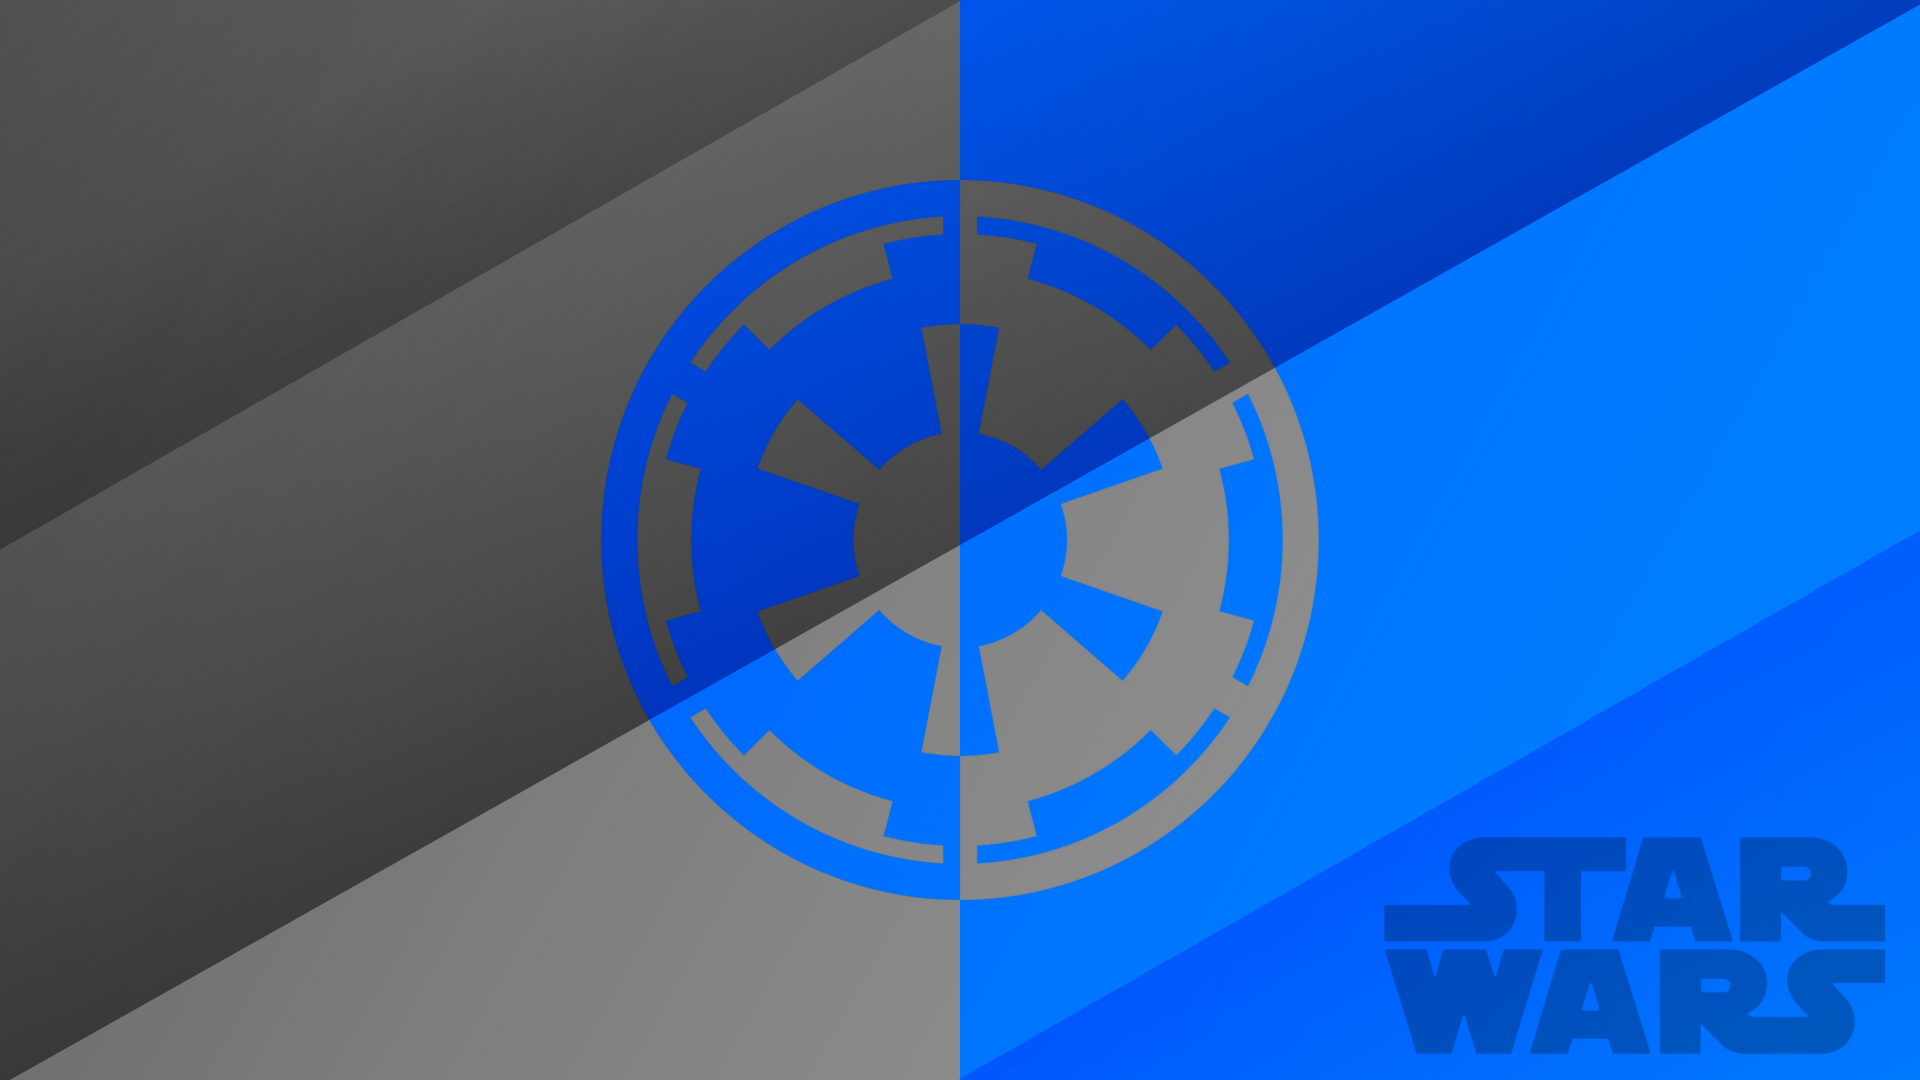 Star Wars Empire Wallpaper Weasyl